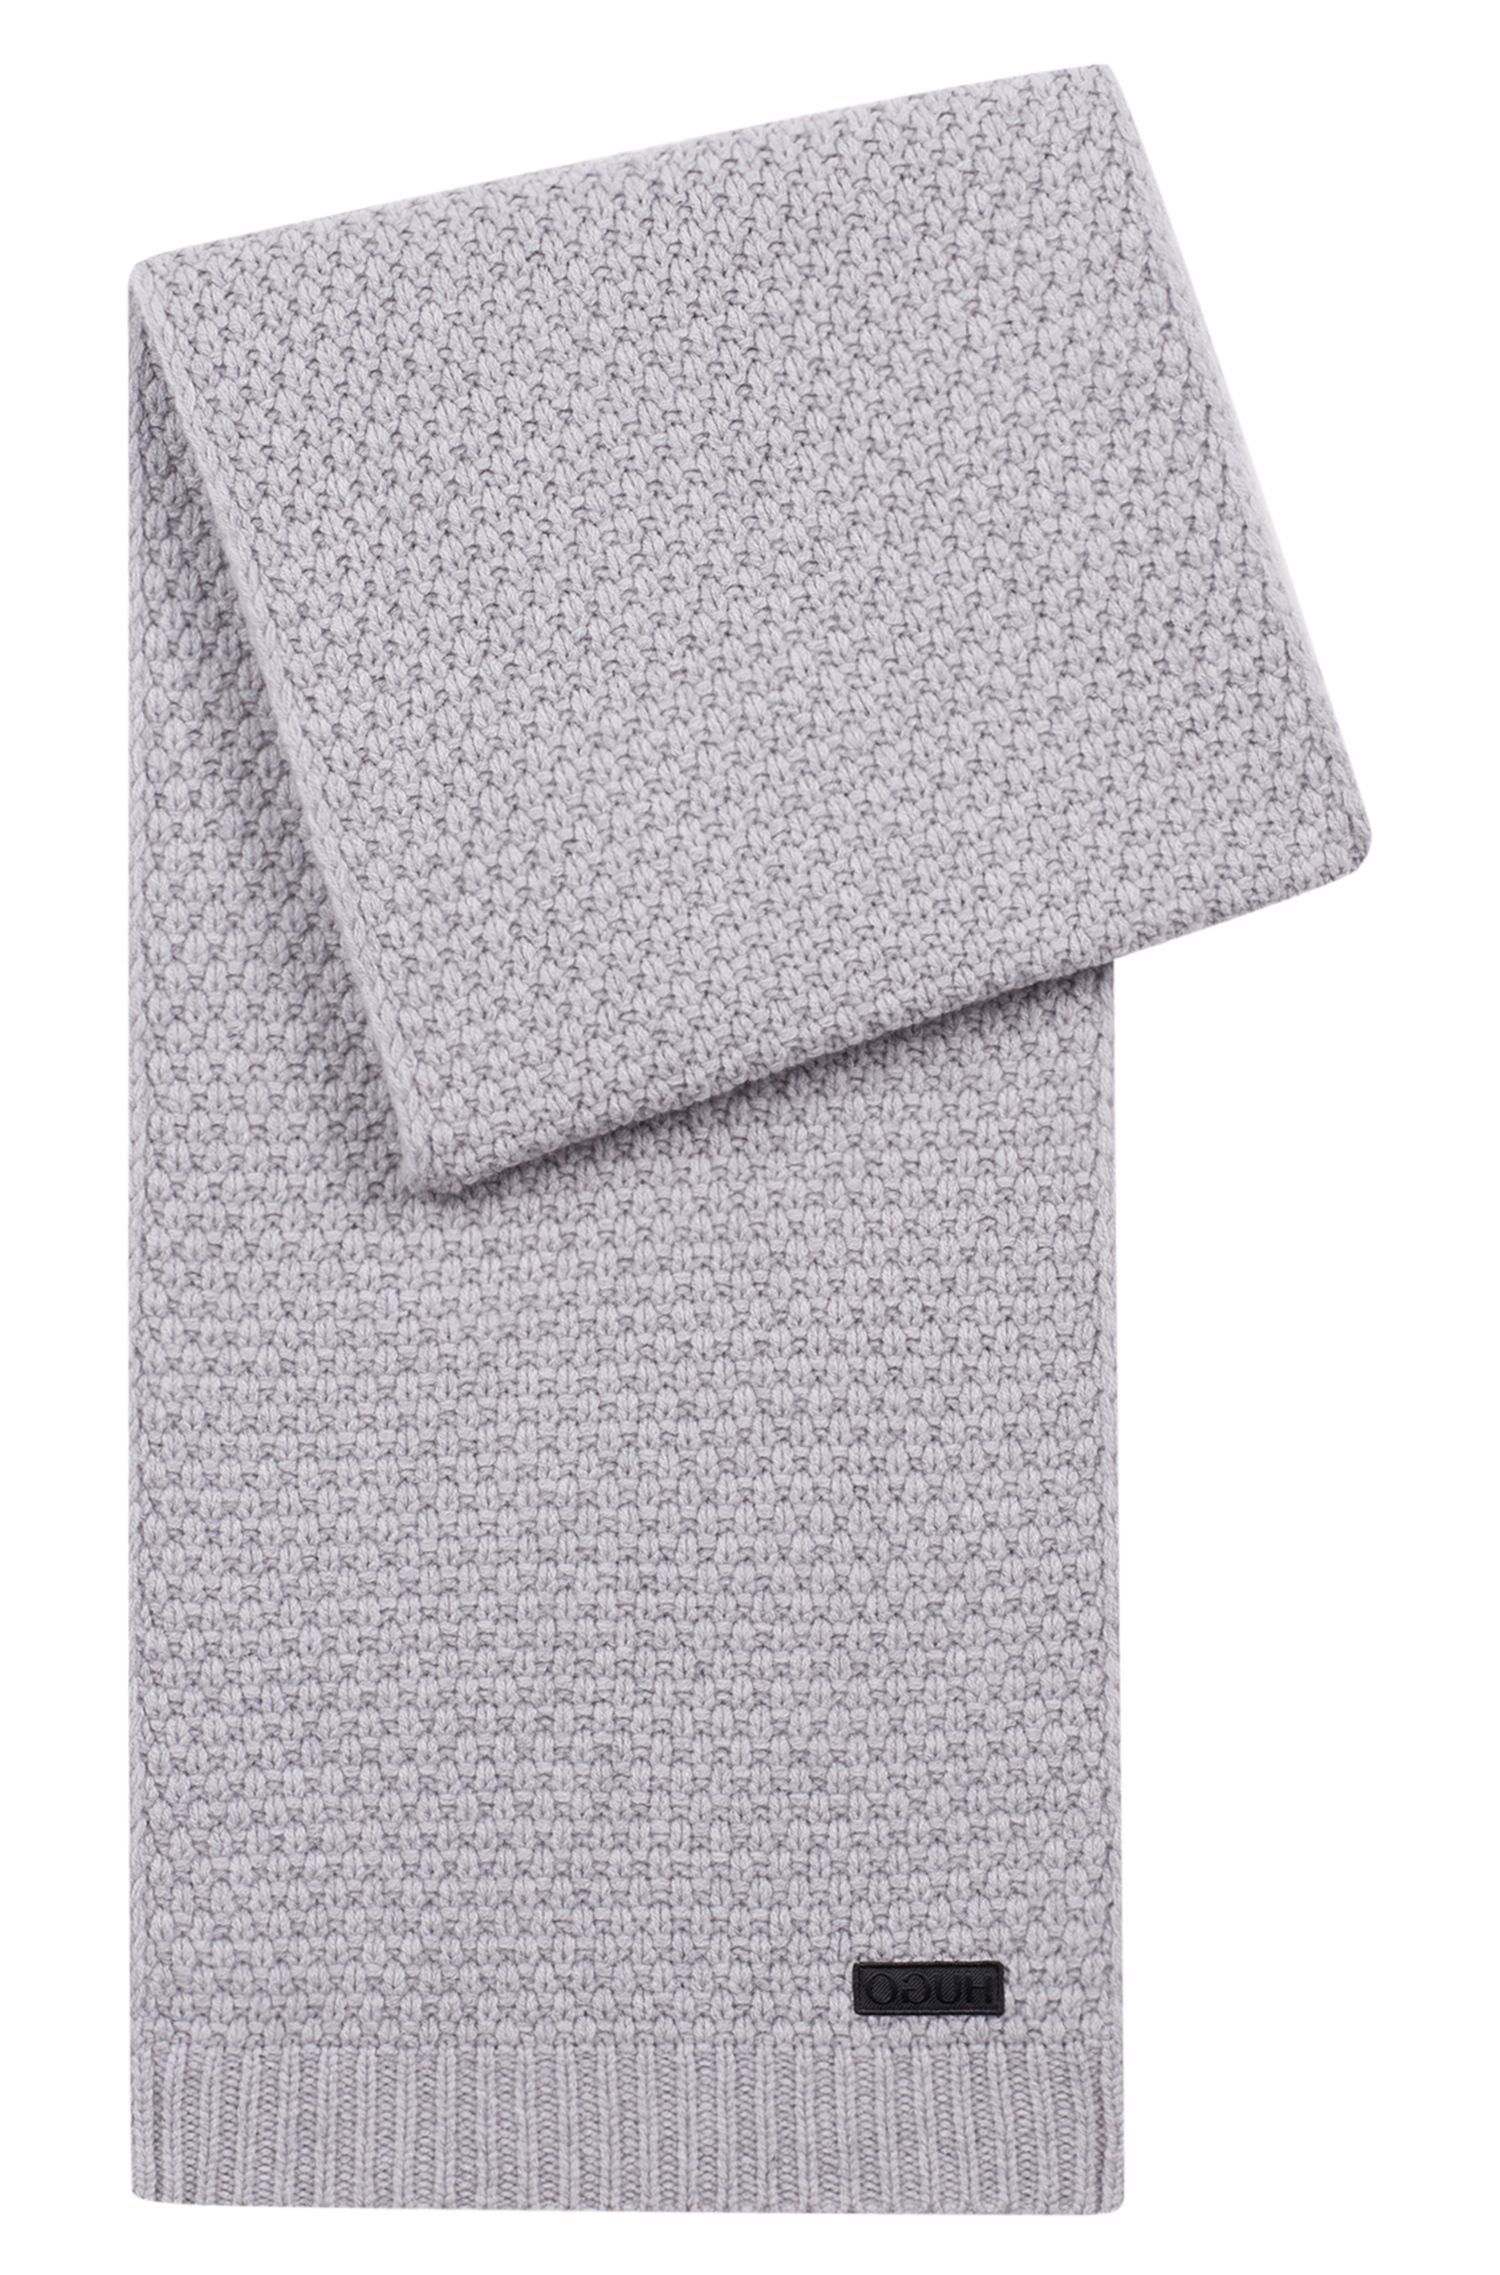 Virgin-wool scarf with jacquard-knit structure, Grey